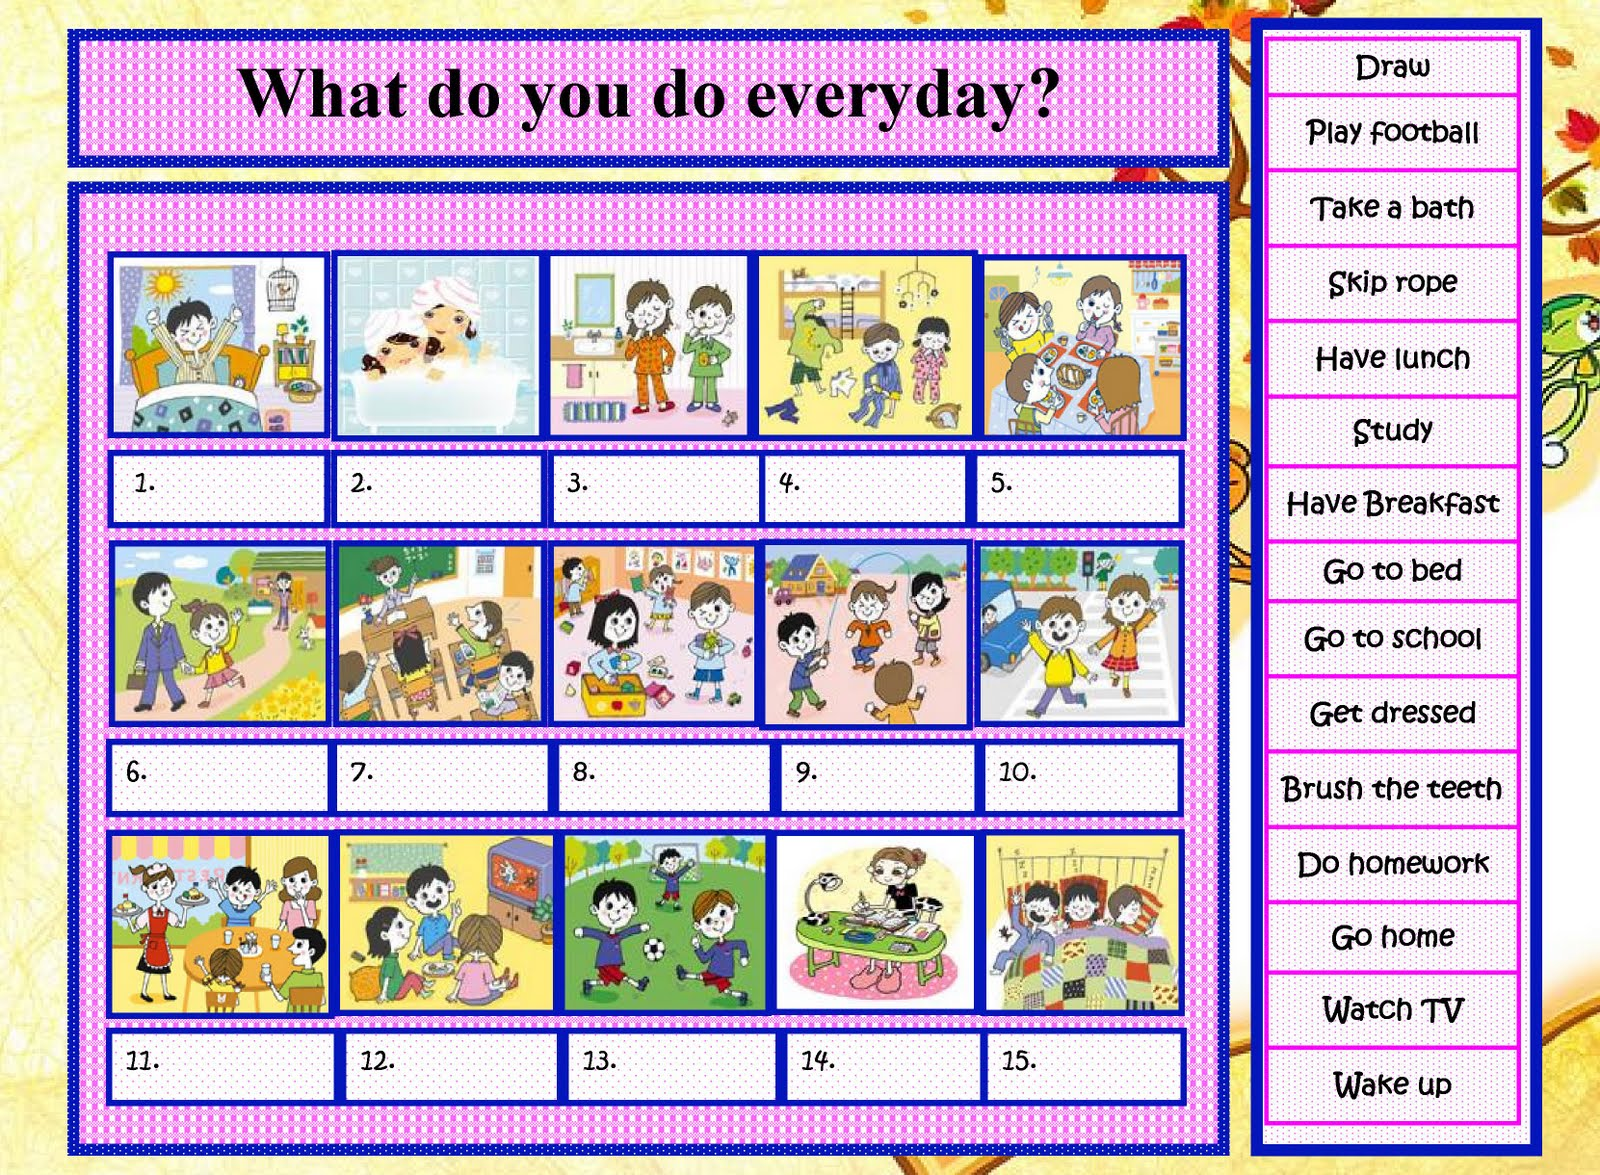 My English Class: Children Activity - English Printable Worksheet